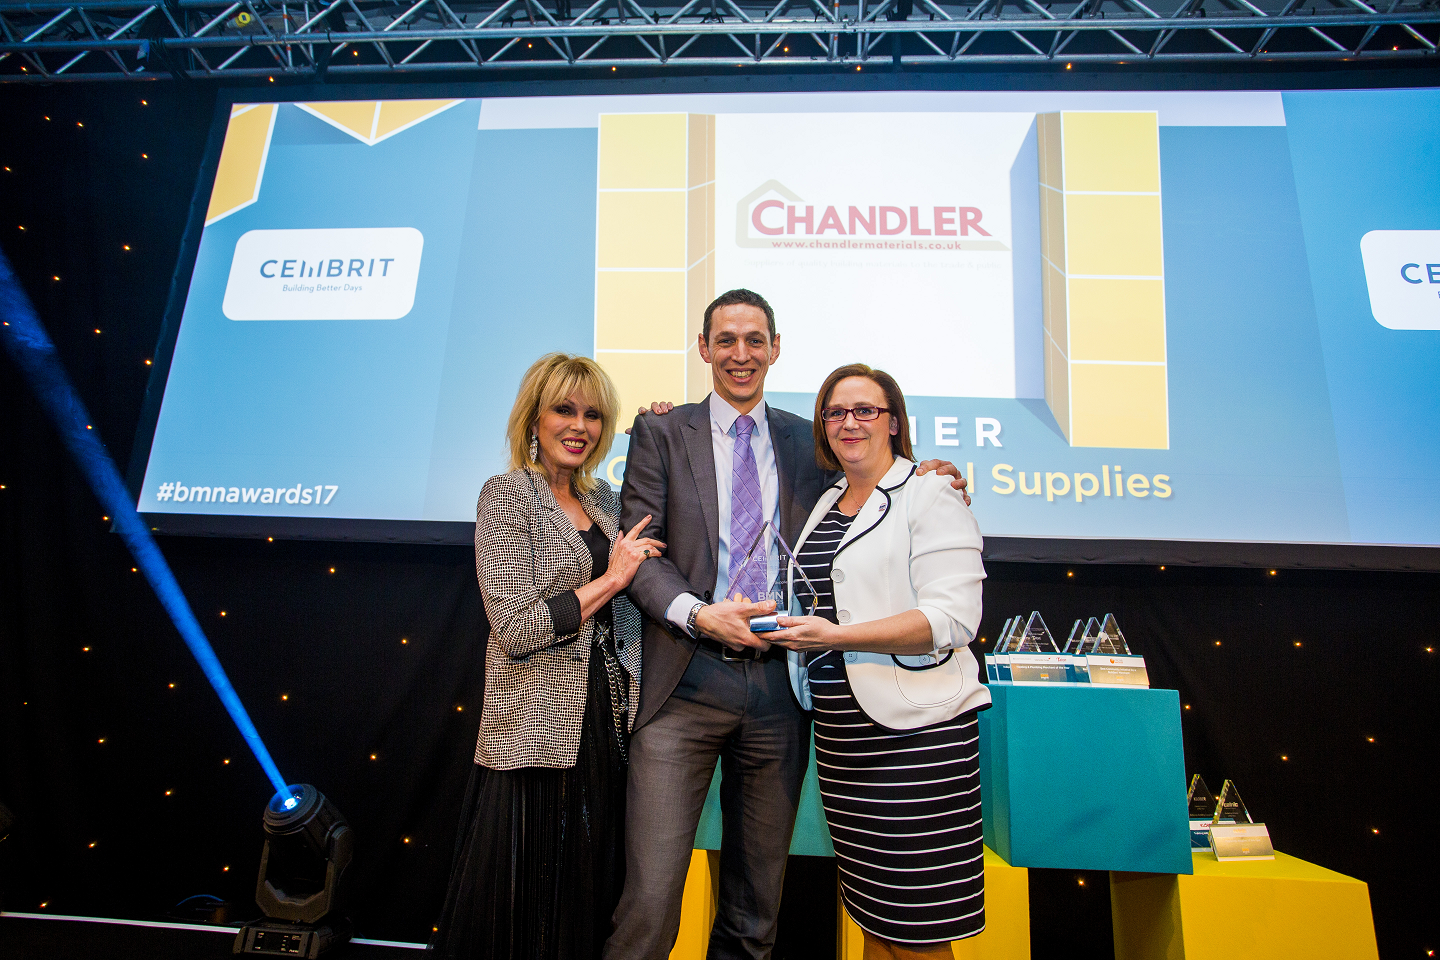 Winner of Website & Digital Initiative of the Year; Joanna Lumley, Ben Chandler, Finance Director - Chandler Material Supplies Ltd,  Samantha Hanks, National Key Account & Specification Manager - Cembrit